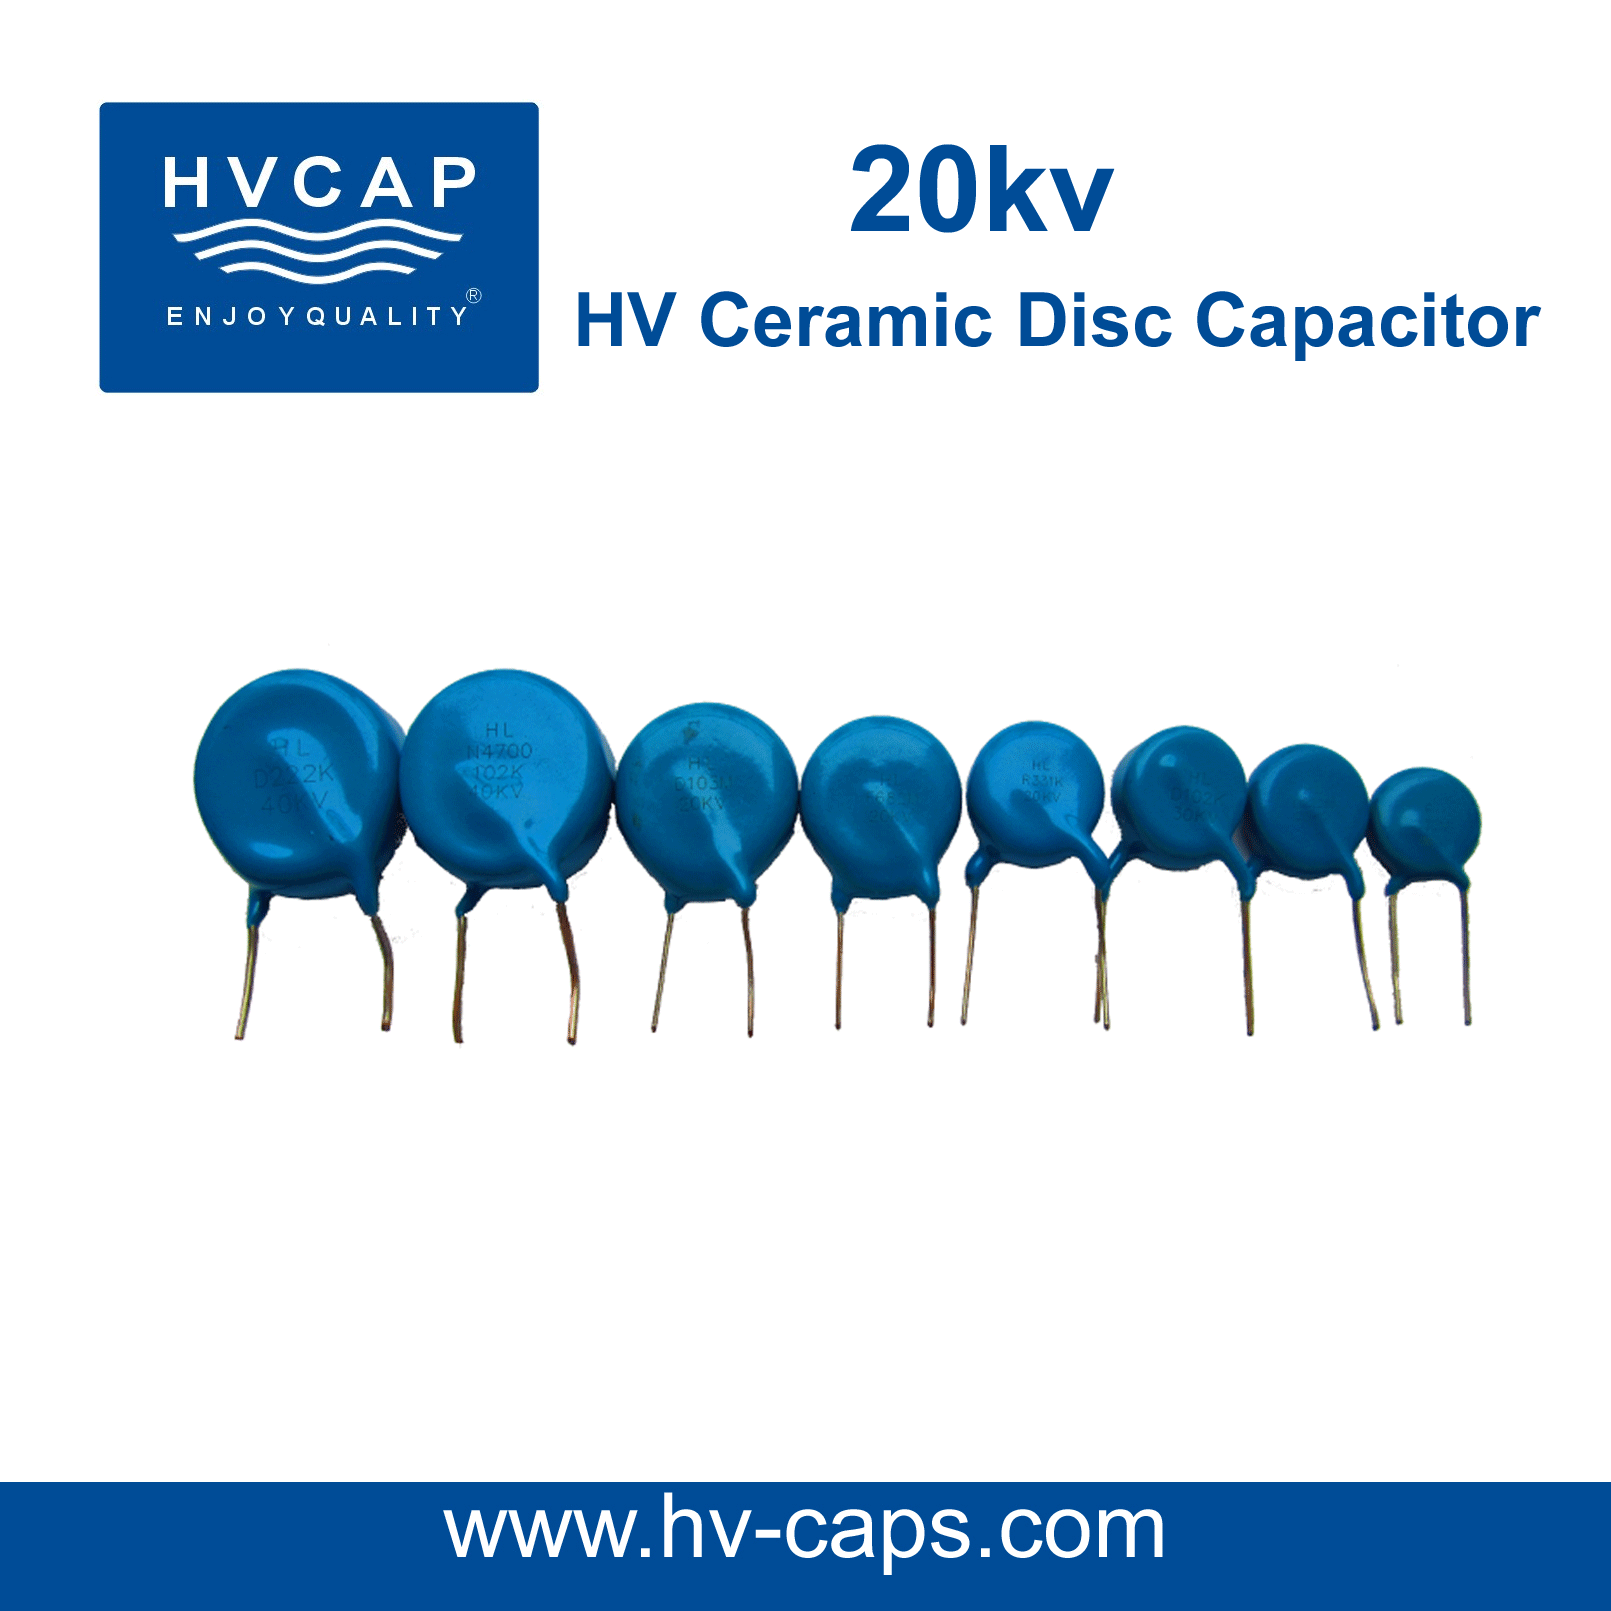 High Voltage Ceramic Capacitor 20Kv detail specification.